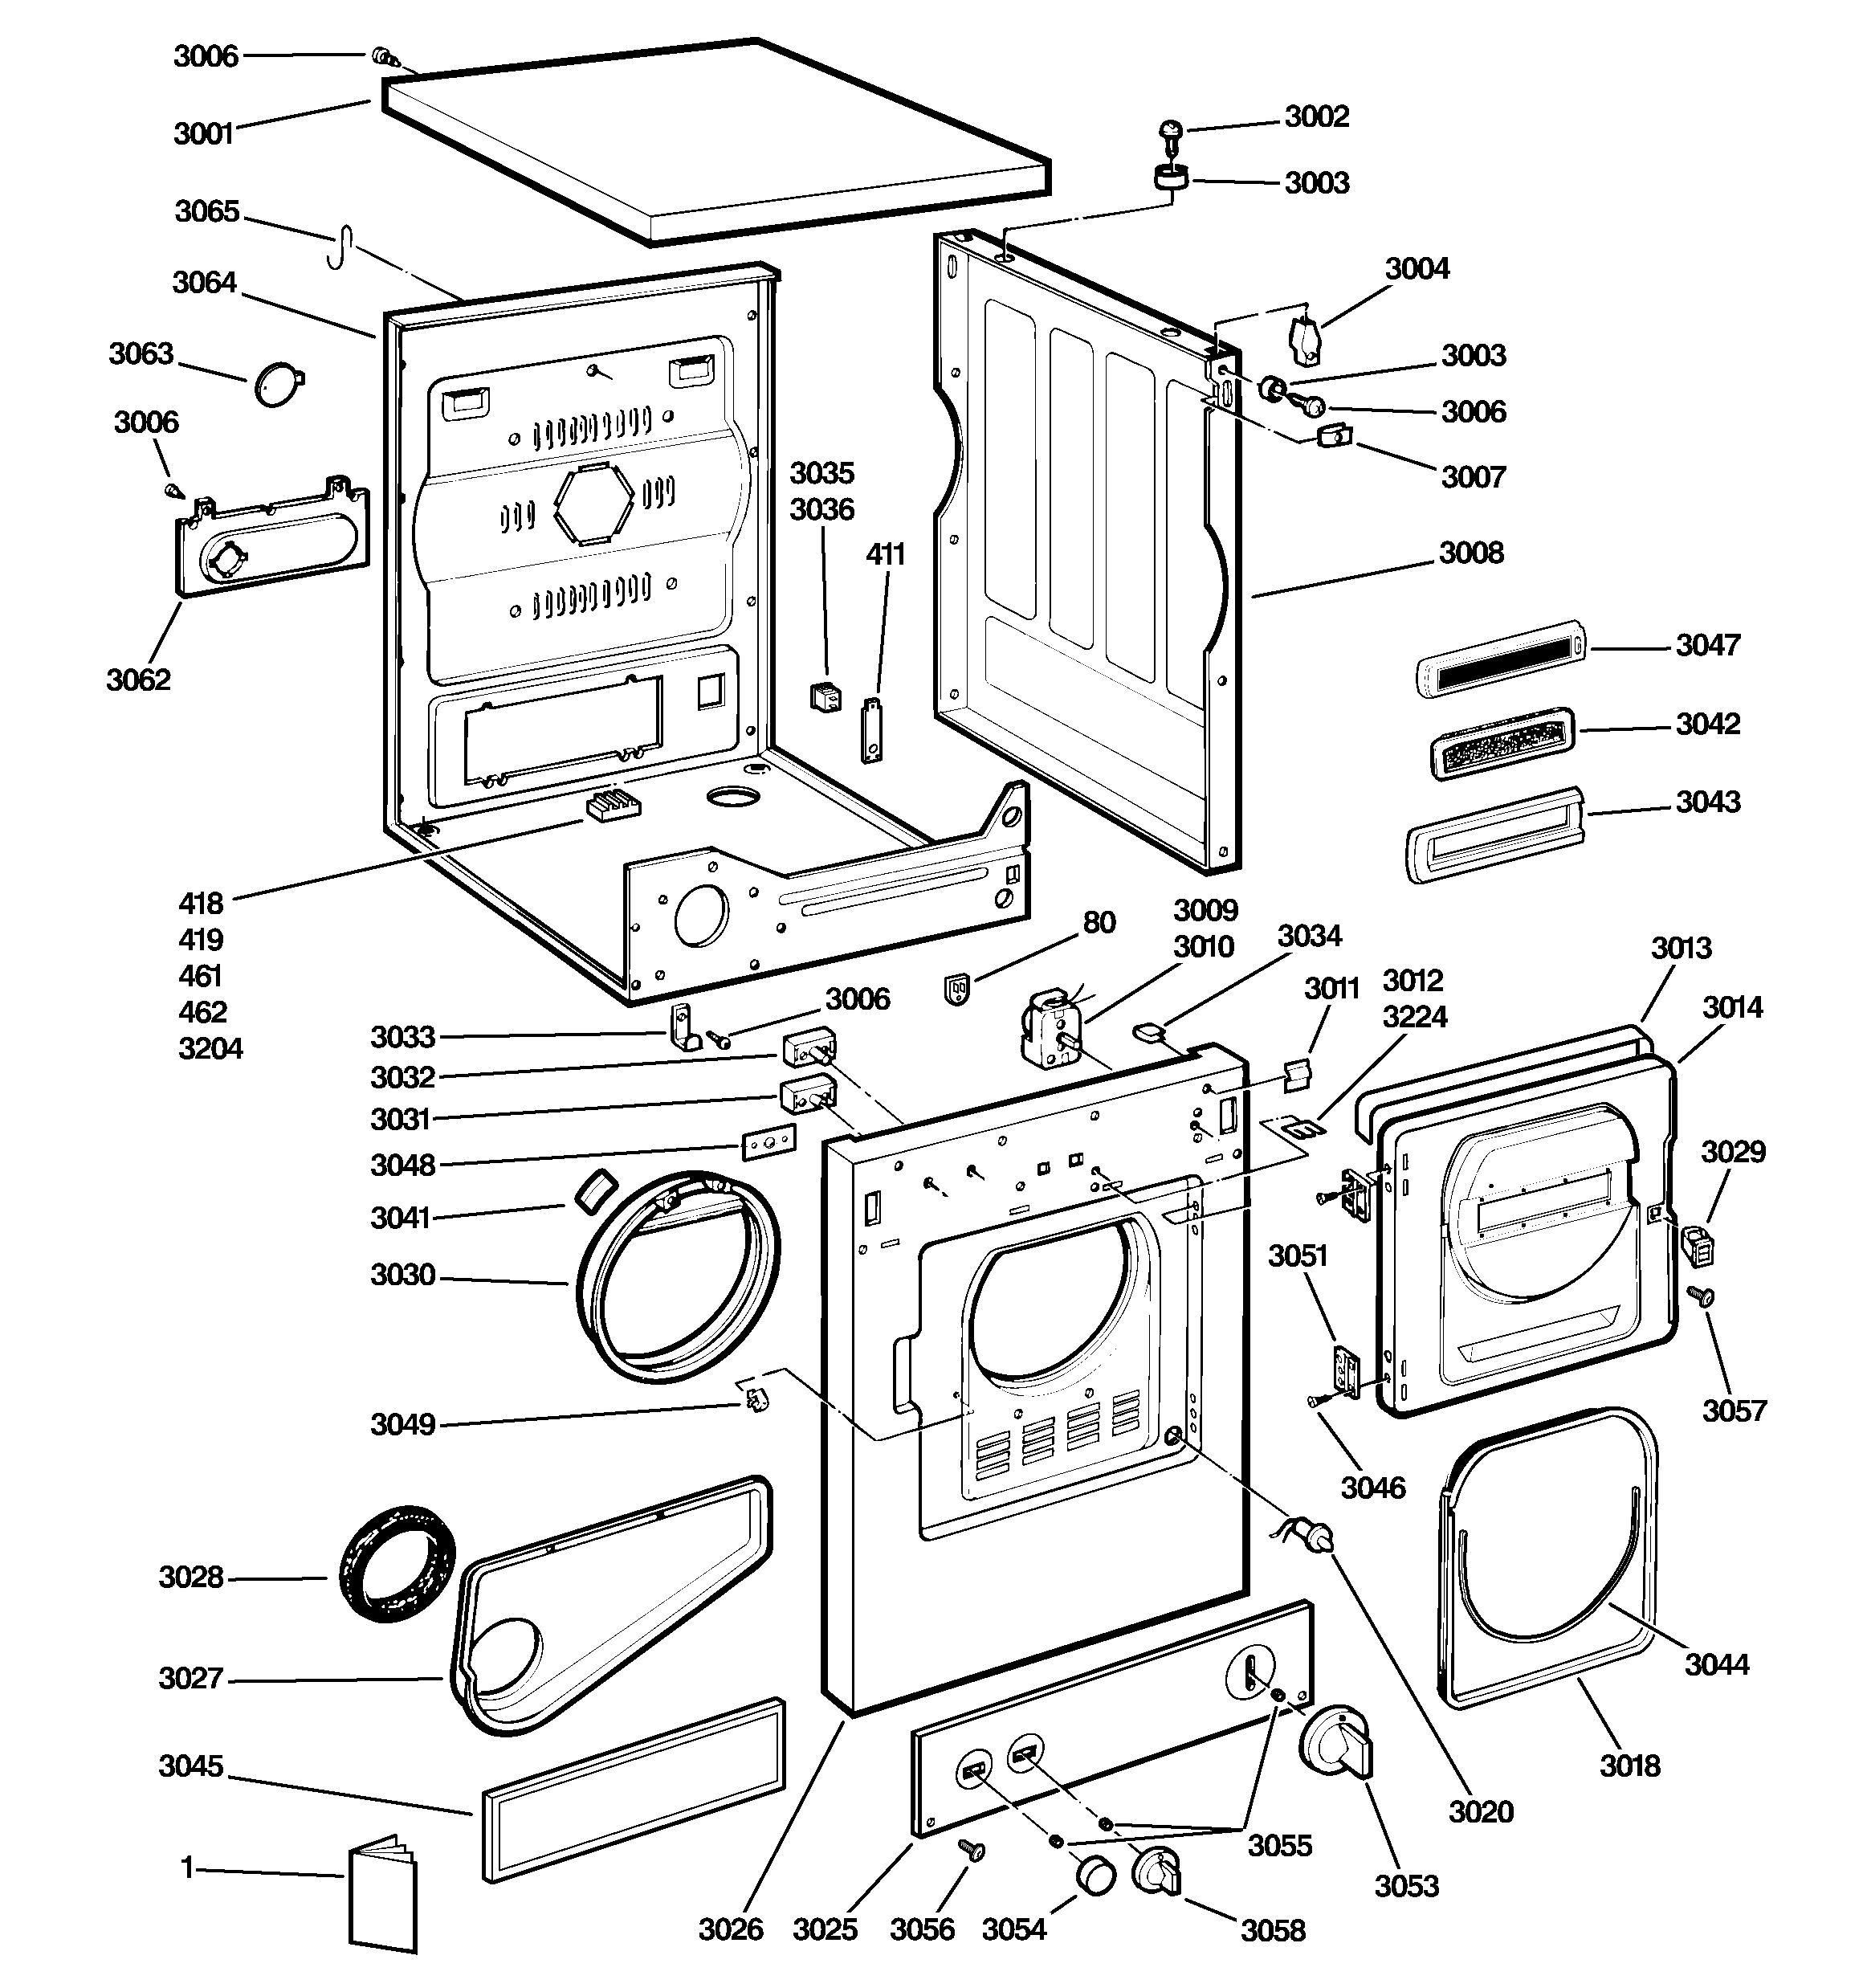 maytag dryer wiring diagram with Item on Whirlpool parts diagram likewise Samsung Dishwasher Filter Location additionally Kenmore Dishwasher Parts Schematic in addition Wiring Diagram For Lg Dryer Dle0332w besides How To Clean Take Apart Open Speed Queen Washer.